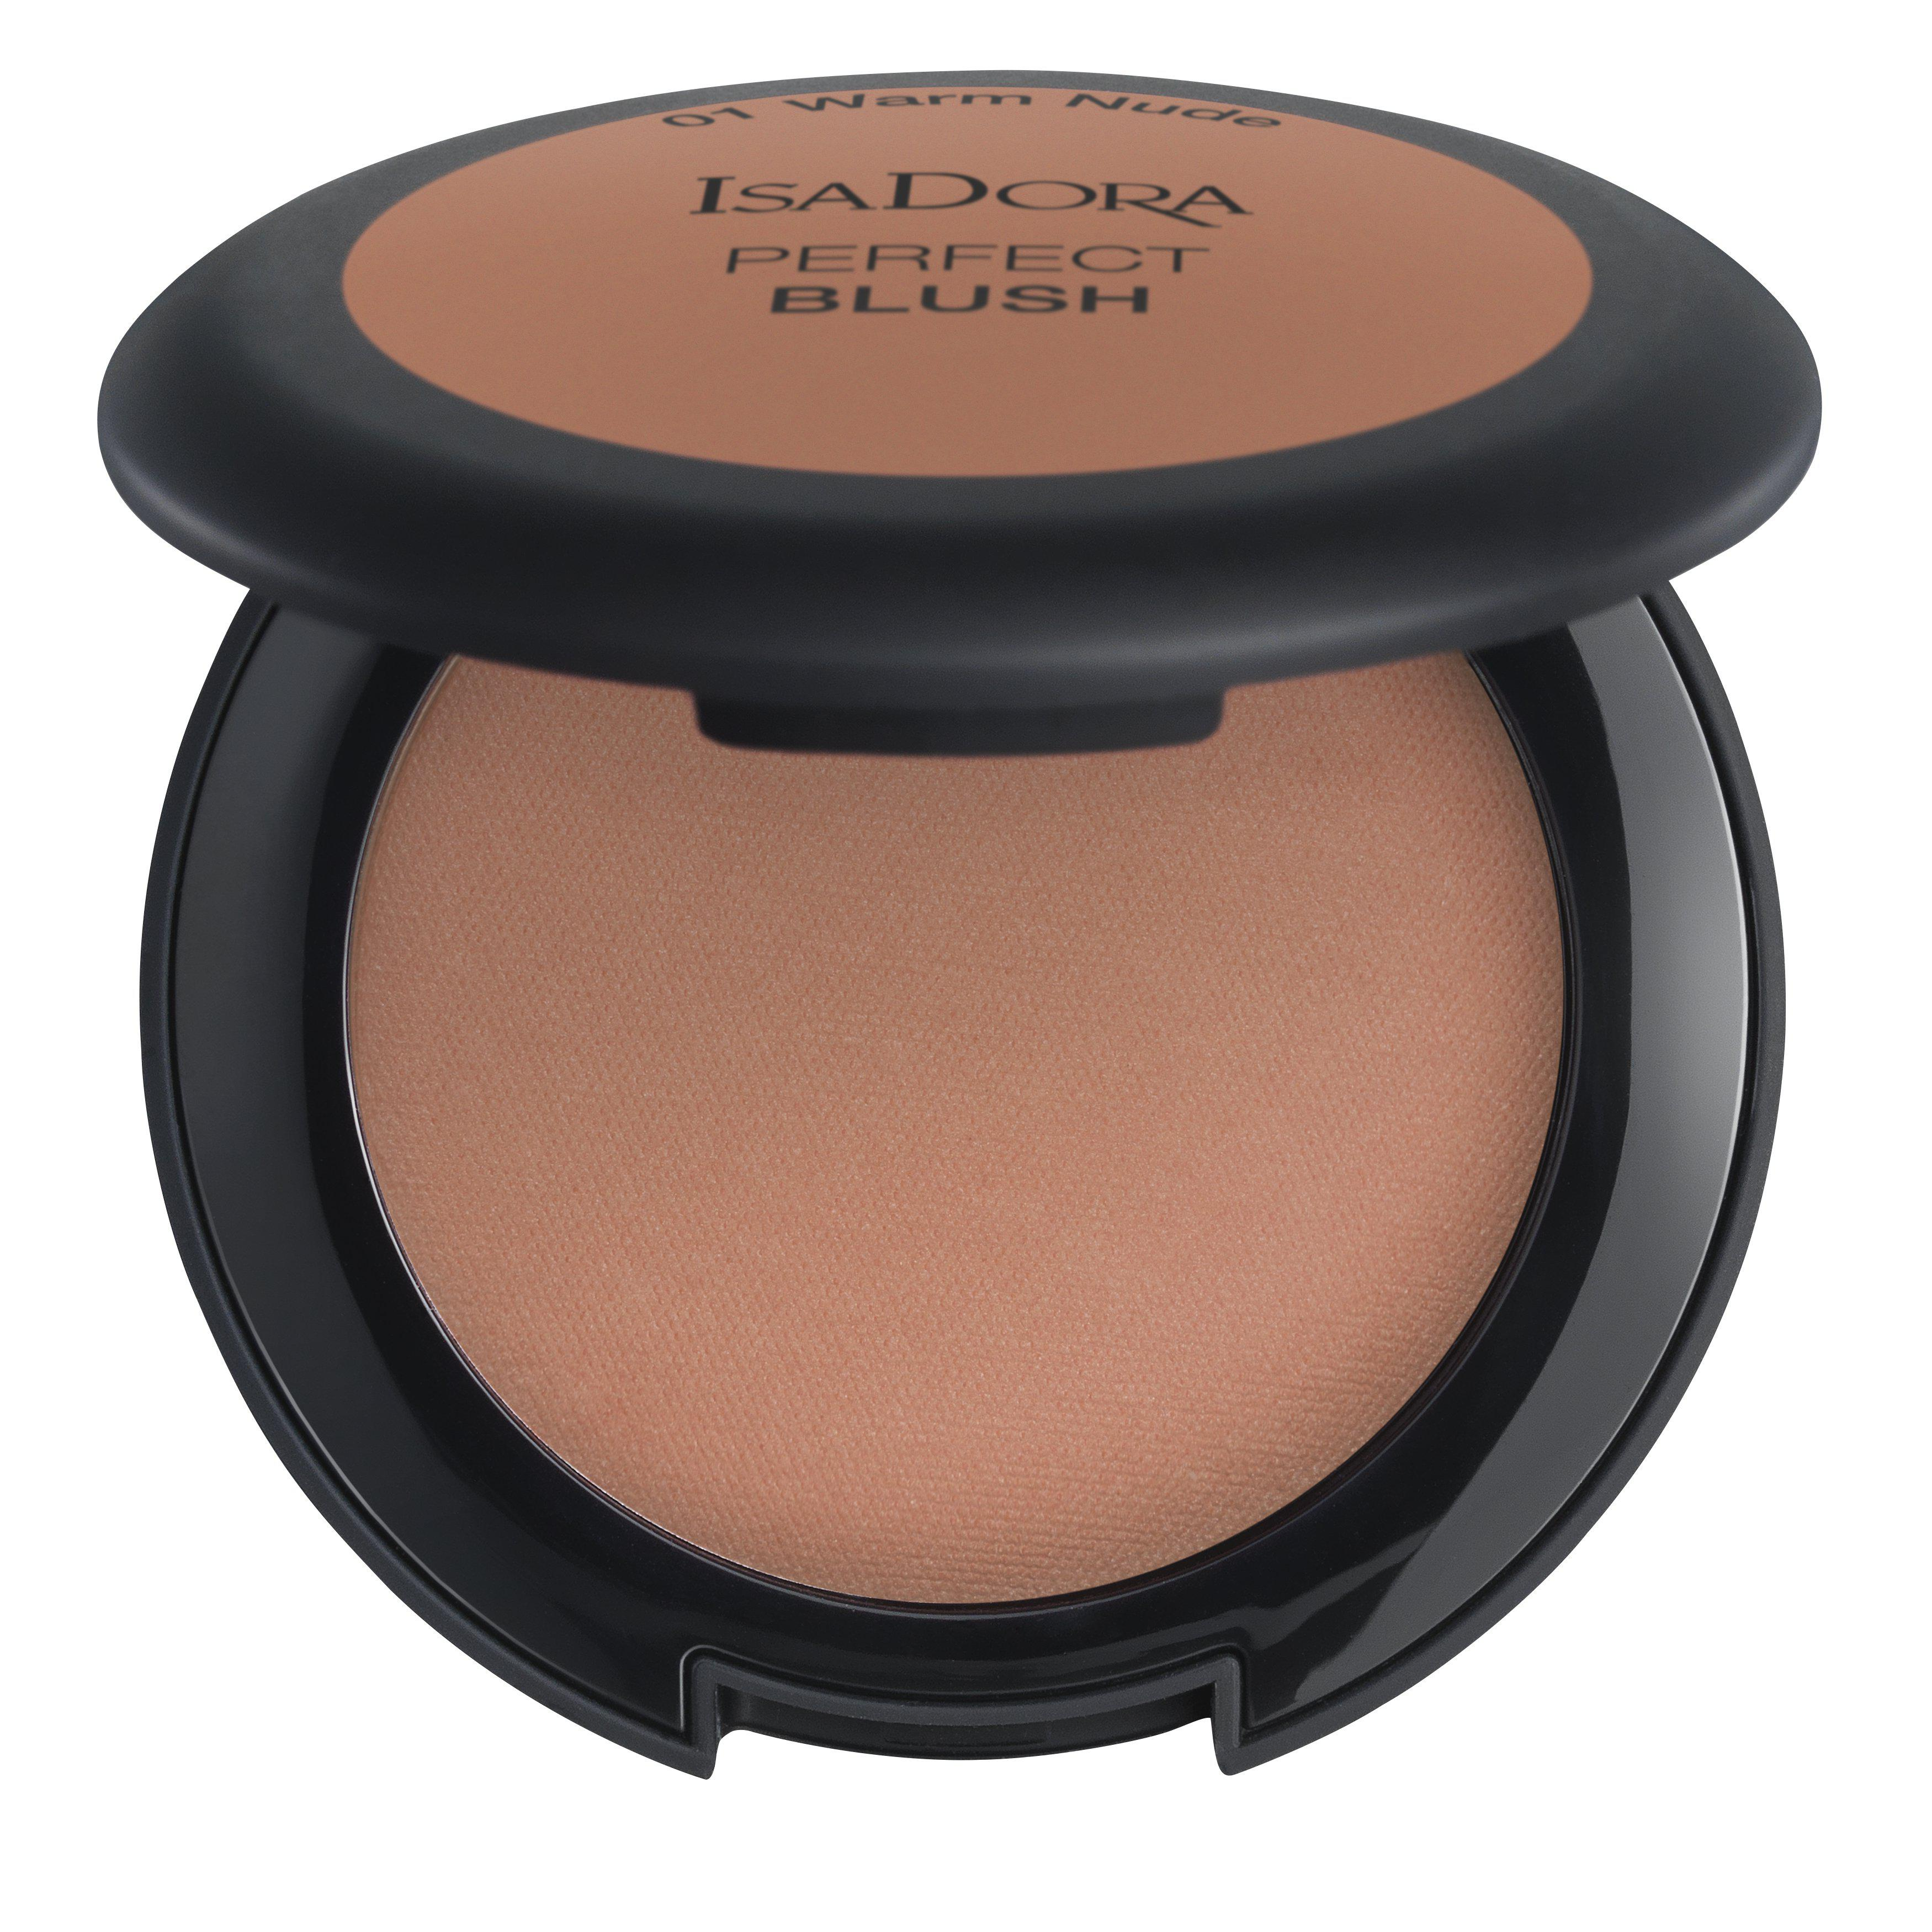 ISADORA. Perfect Blush Re-Launch